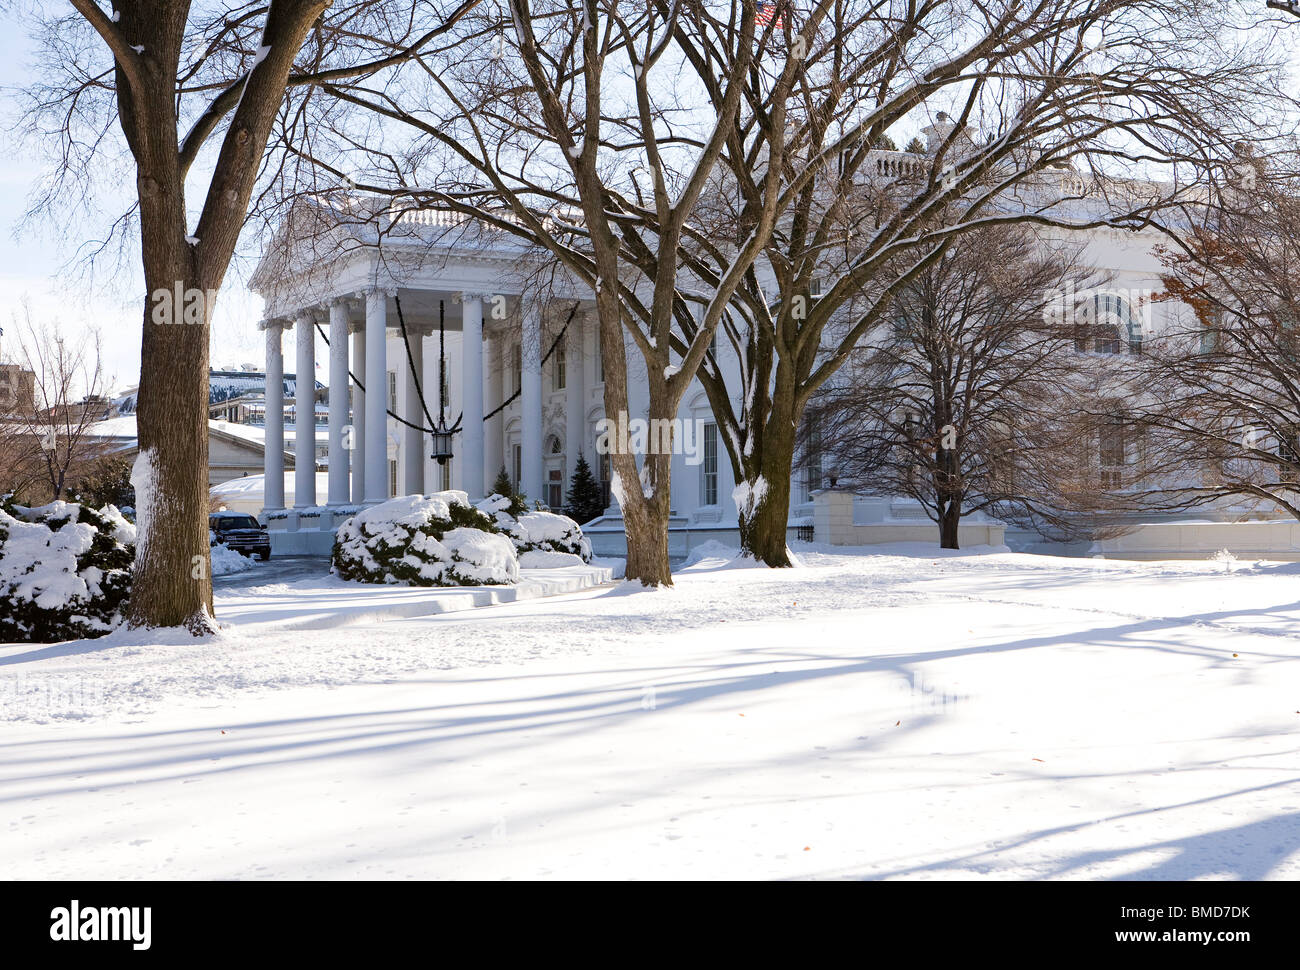 The White House grounds following a snow storm. - Stock Image